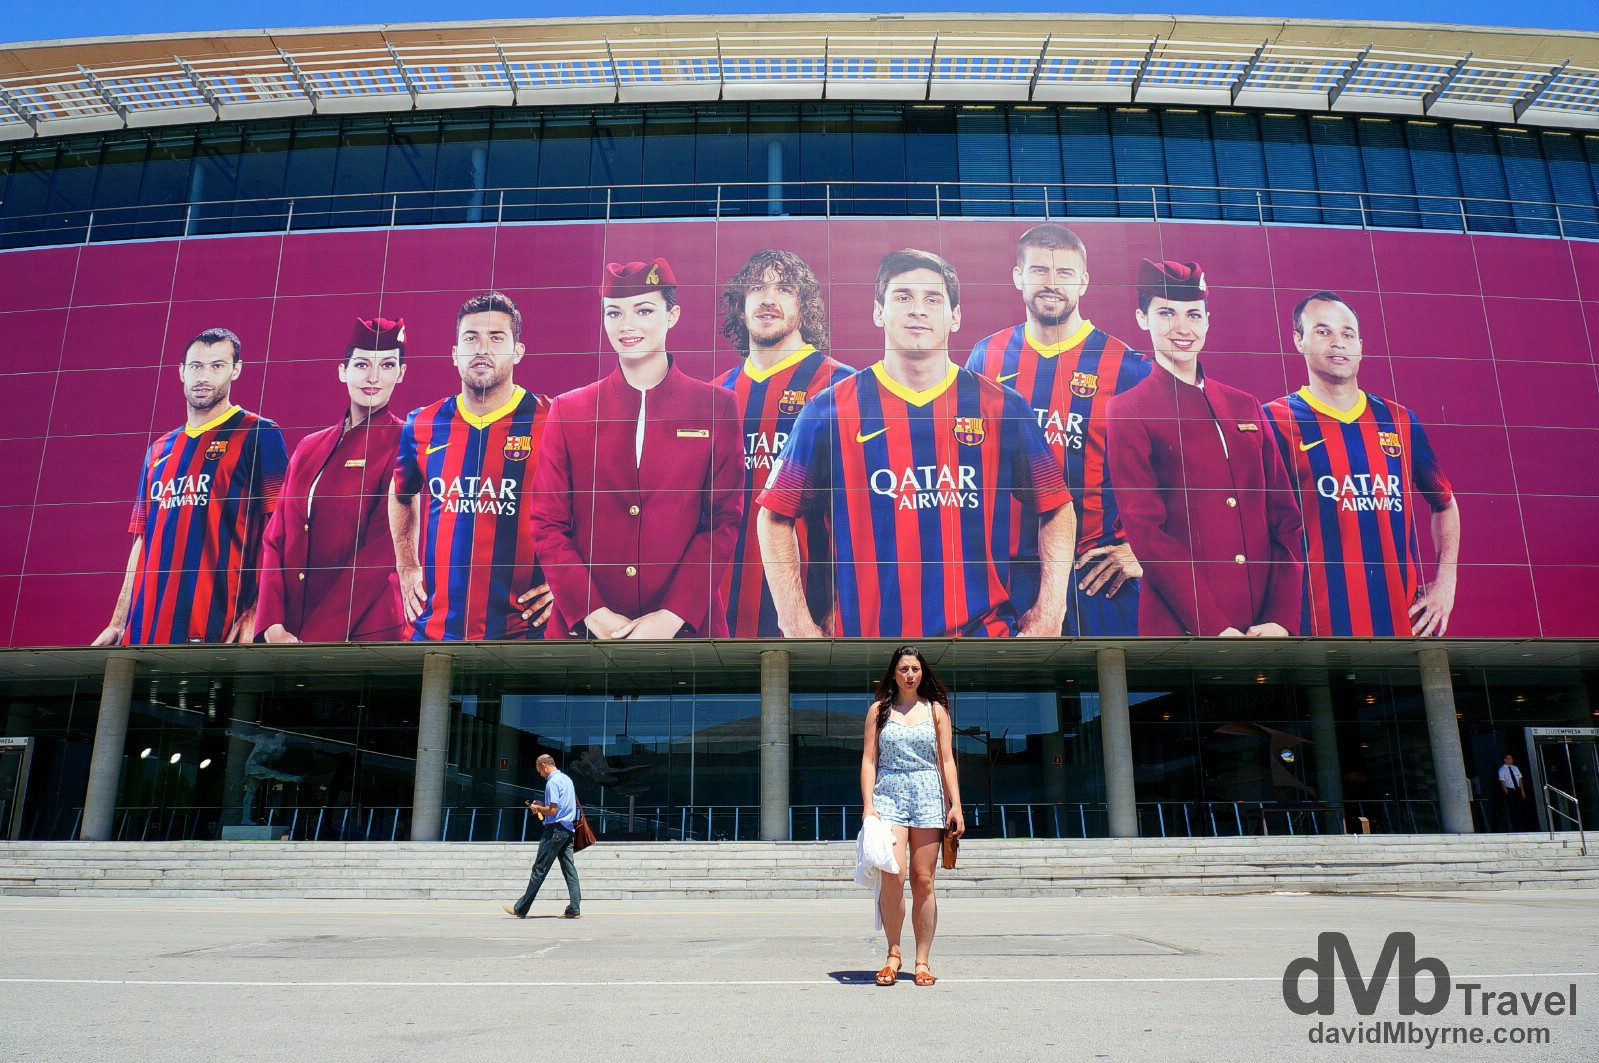 Fronting Europe's largest sports stadium, Estadi Camp Nou in Barcelona, Spain. June 18th, 2014.